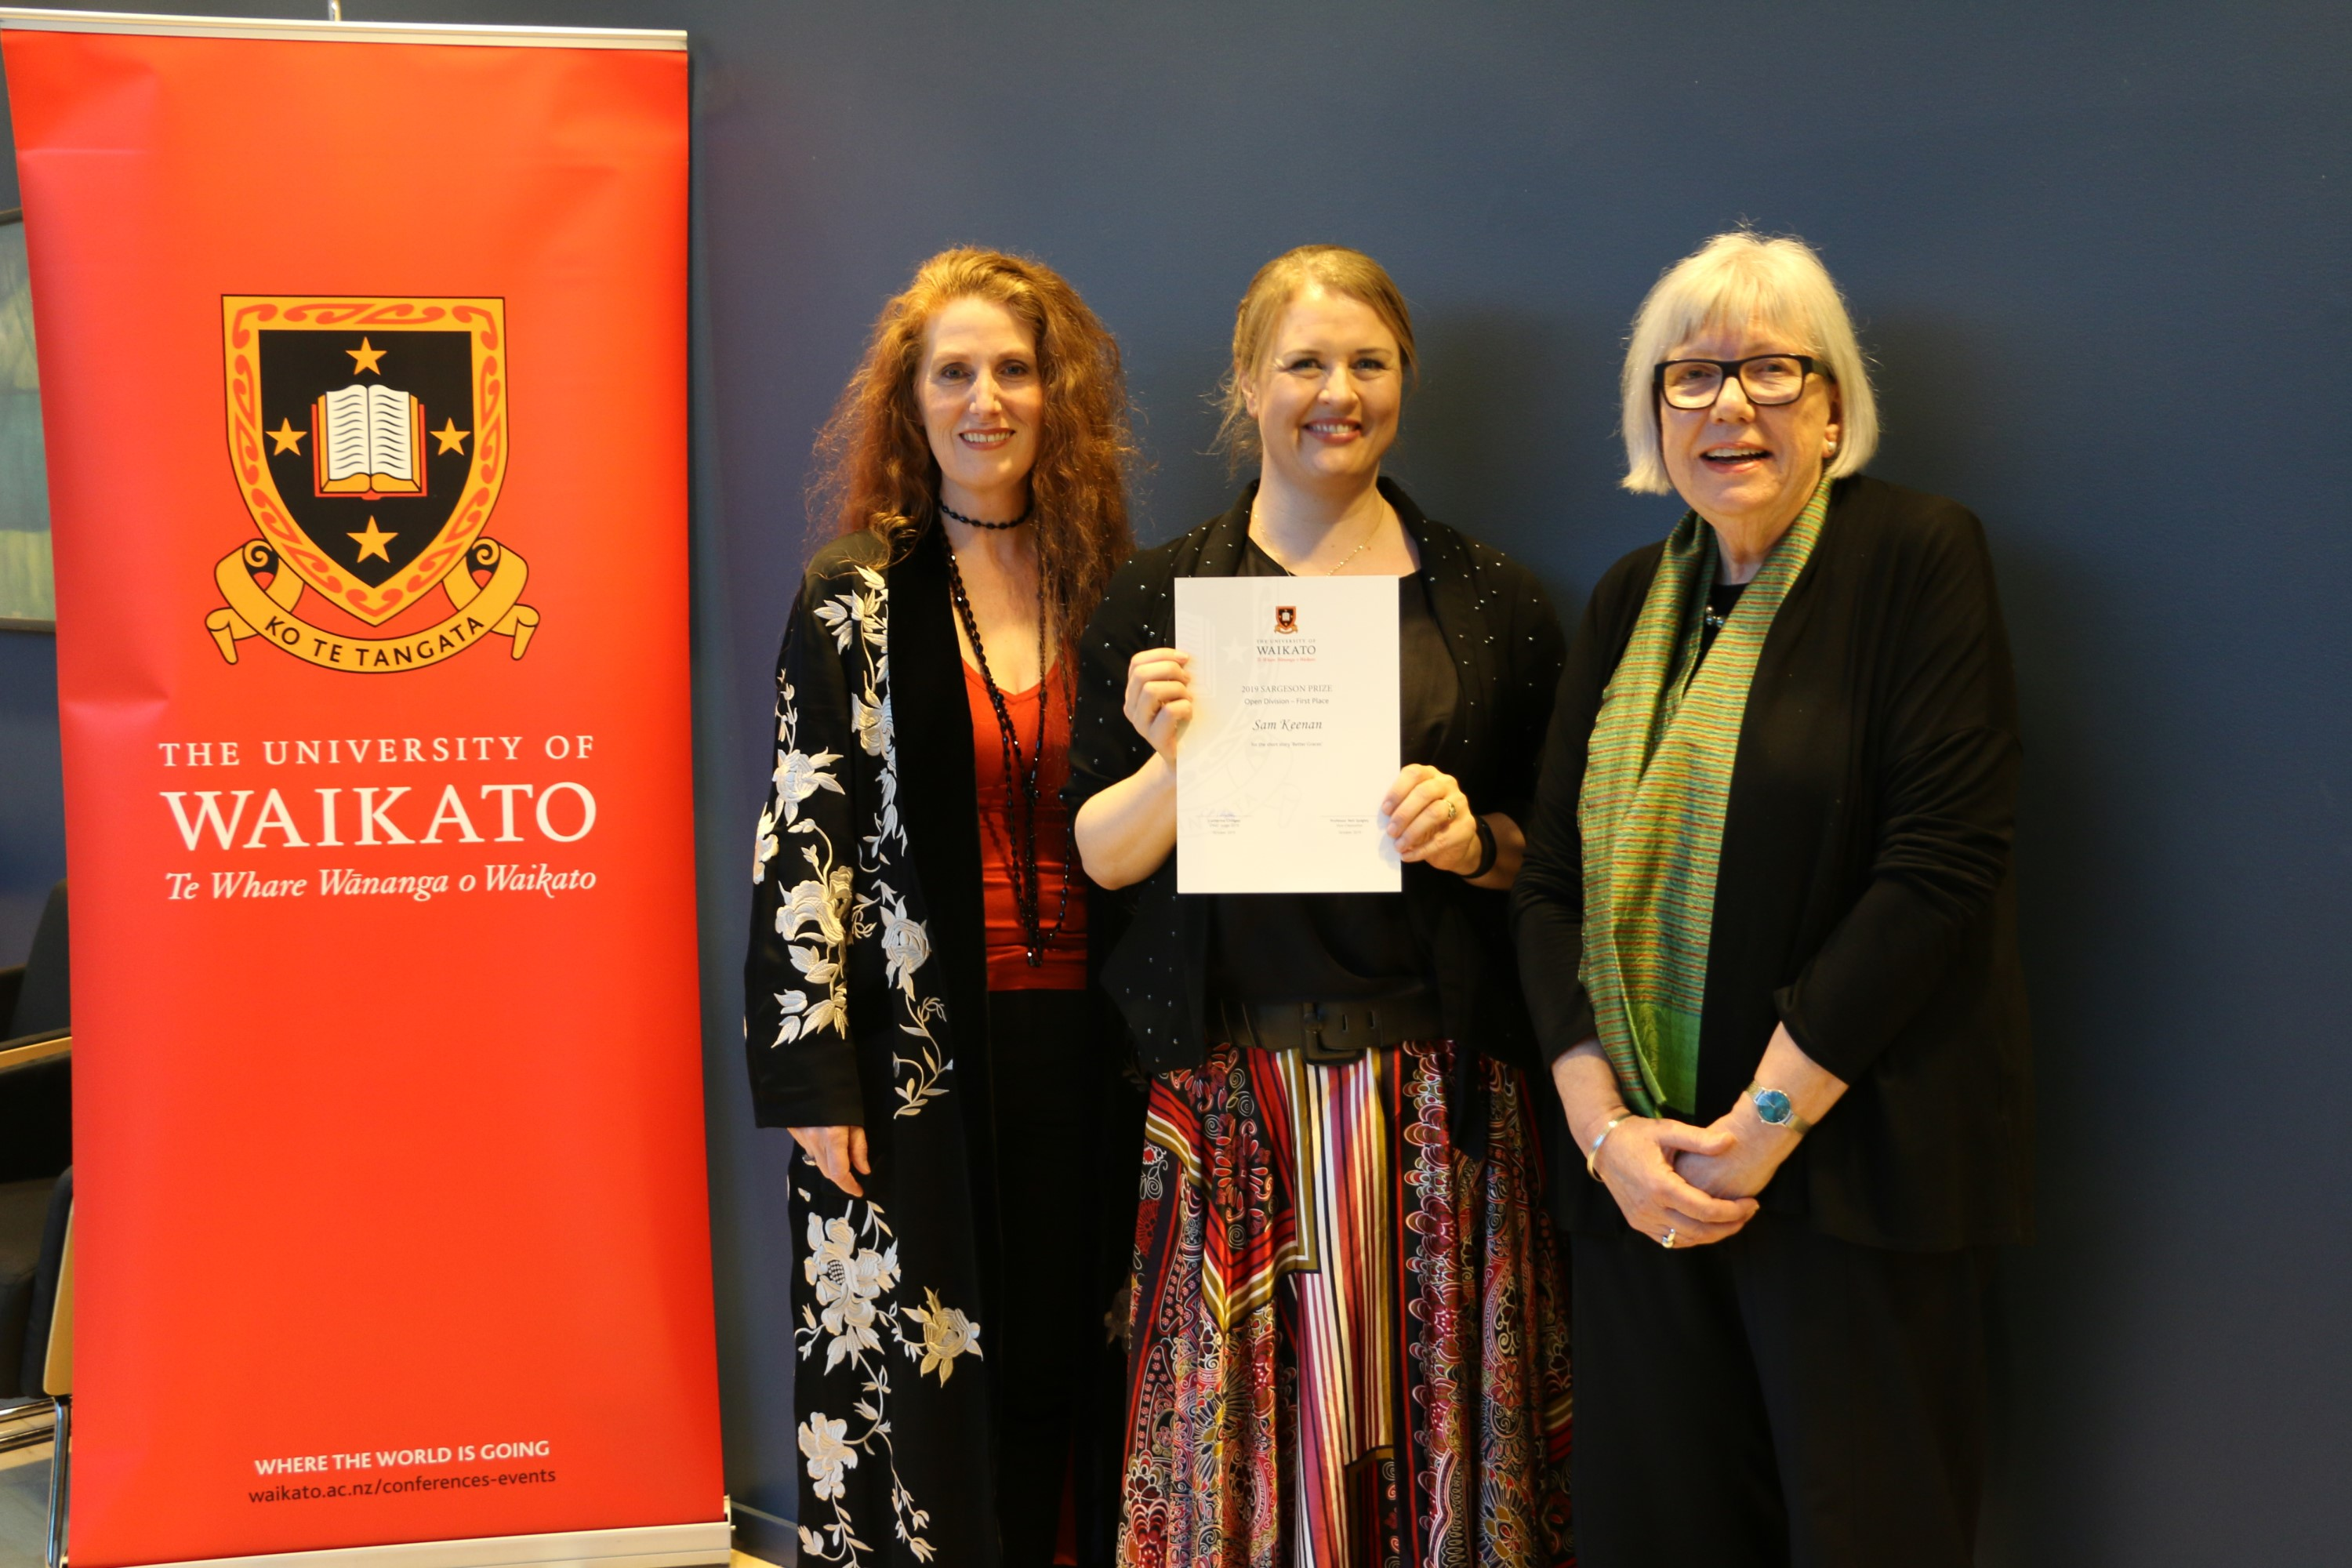 L to R: Judge Catherine Chidgey, Open Division Winner Sam Keenan, and University of Waikato Pro Vice-Chancellor Allison Kirkman